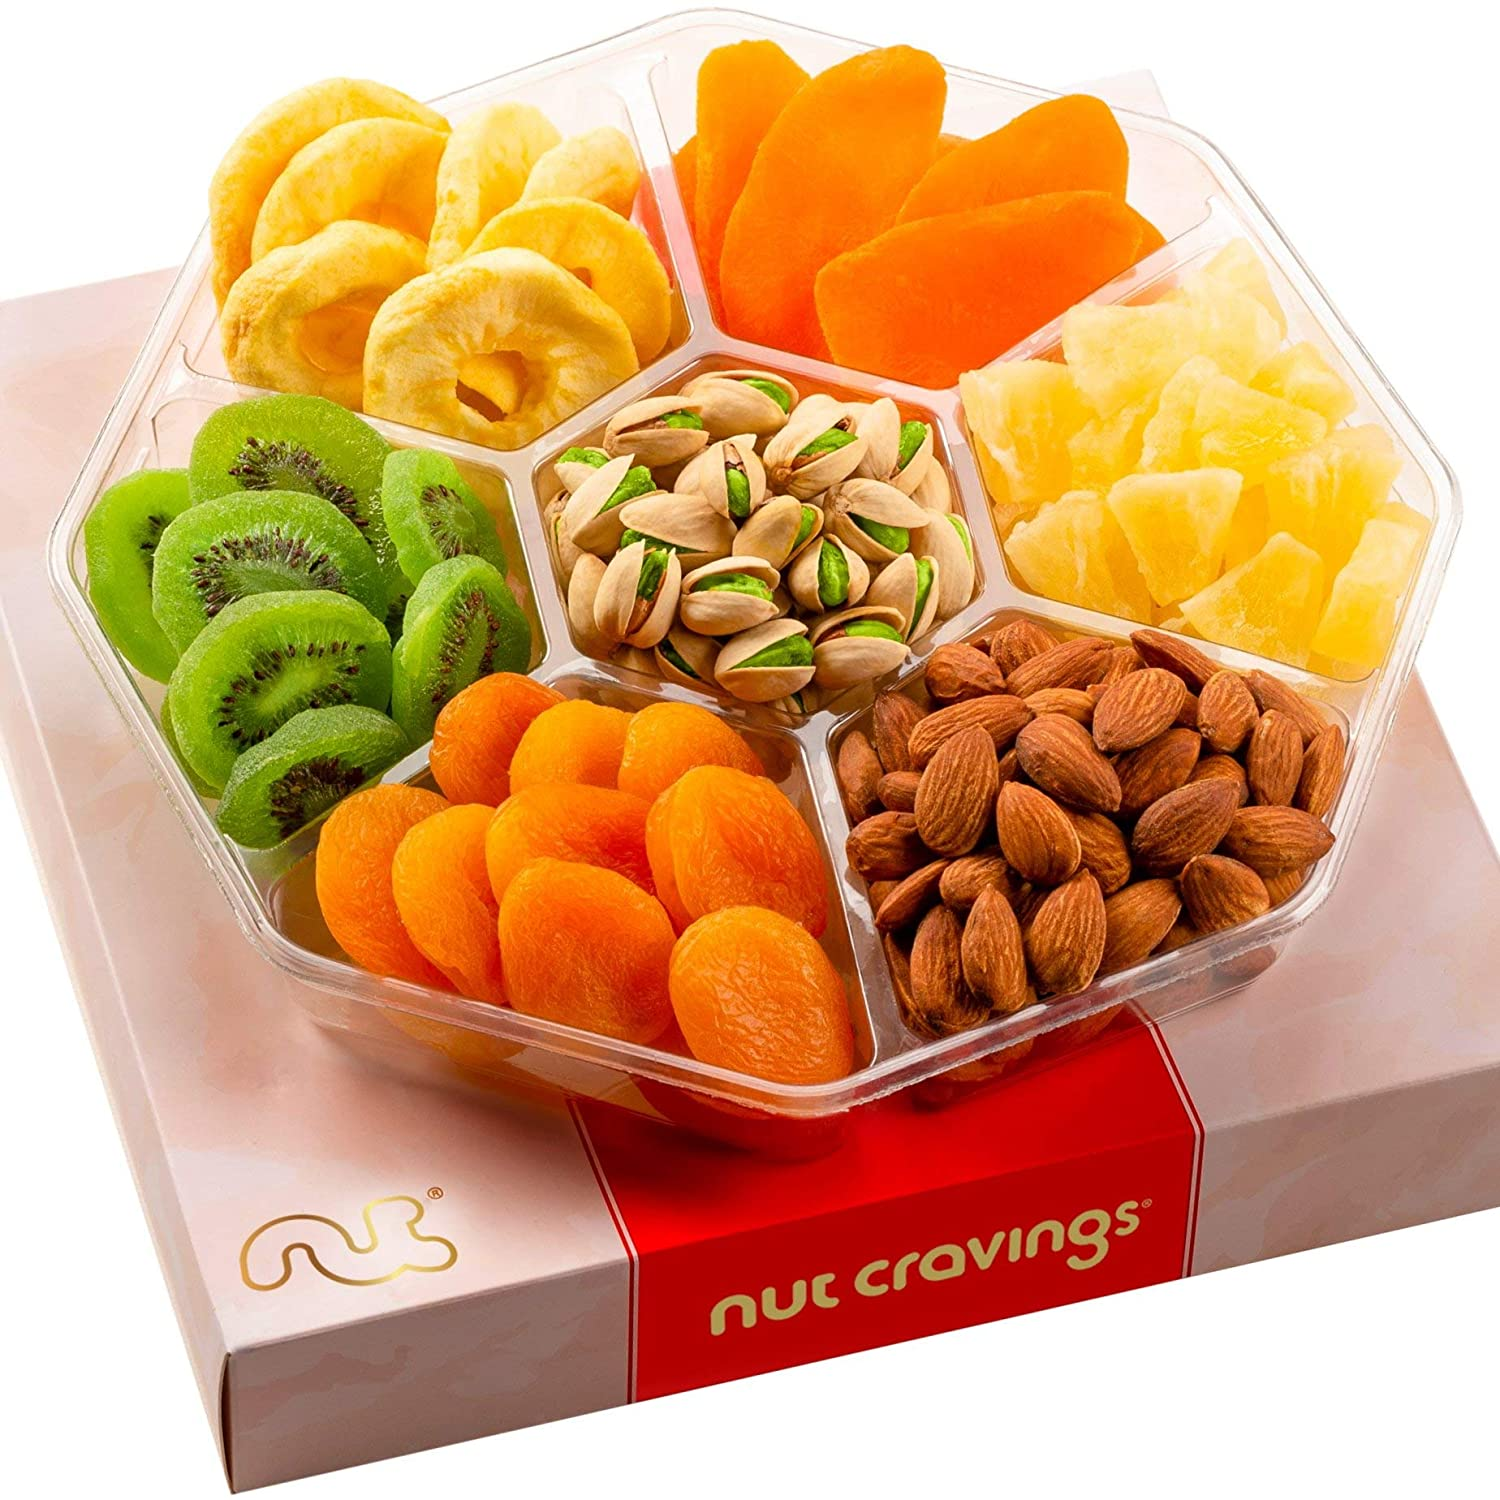 Gourmet Dried Fruit & Nut Gift Basket, Red Box (7 Mix Tray) - Easter Food Arrangement Platter, Care Package Variety, Prime Birthday Assortment, Healthy Kosher Snack Tray for Women, Men, Adults